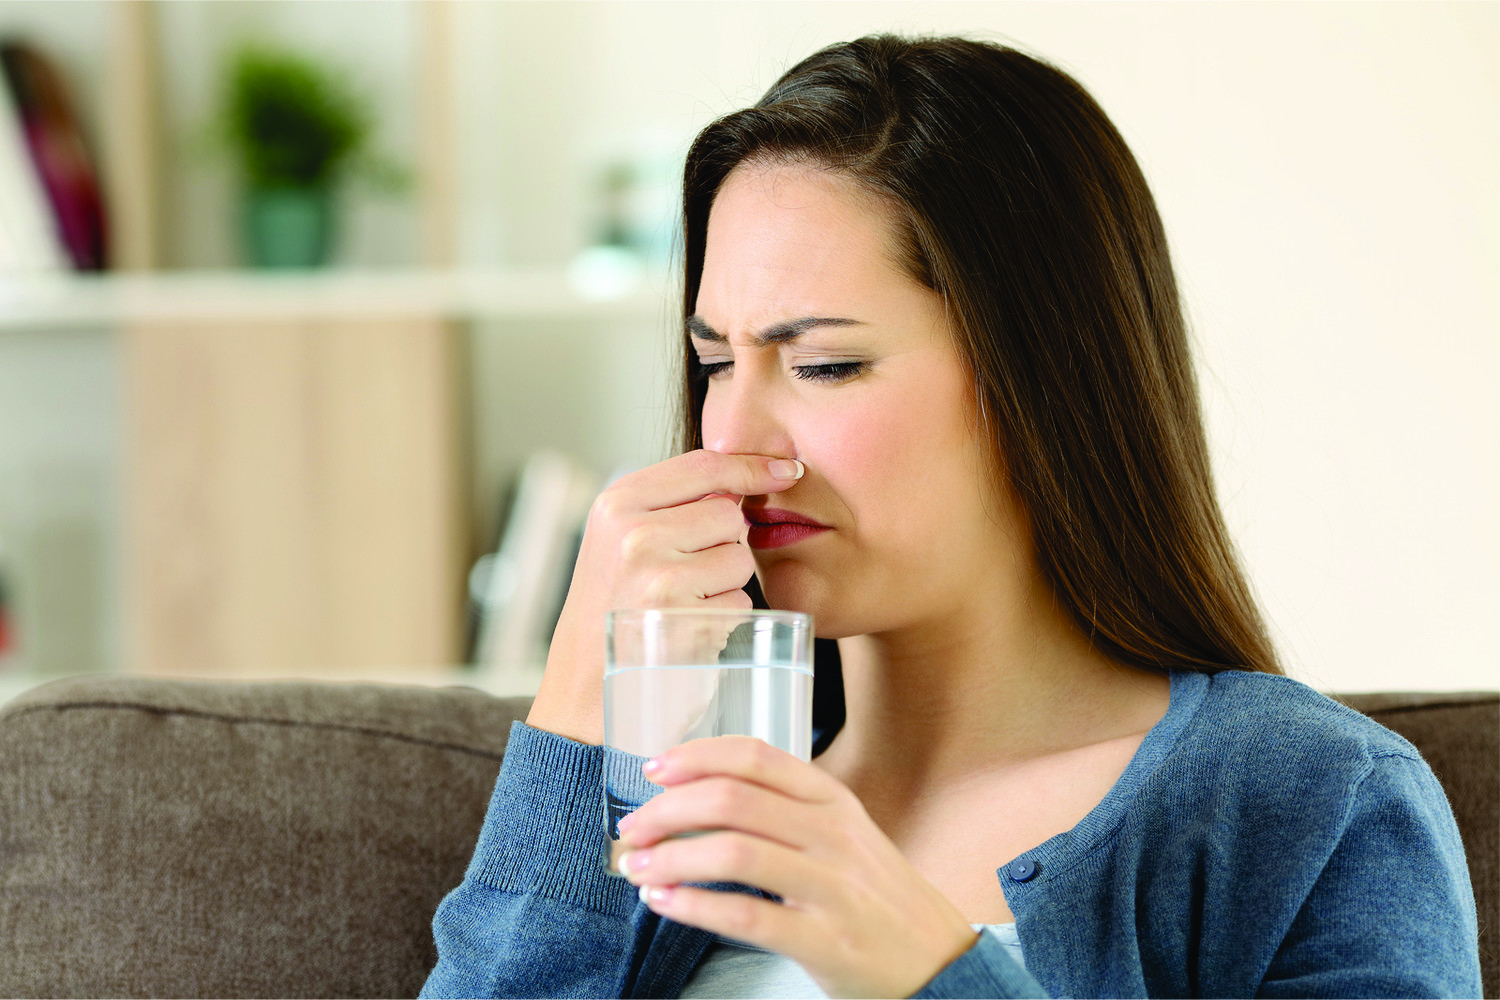 Common Tap Water Sight Smell Problems